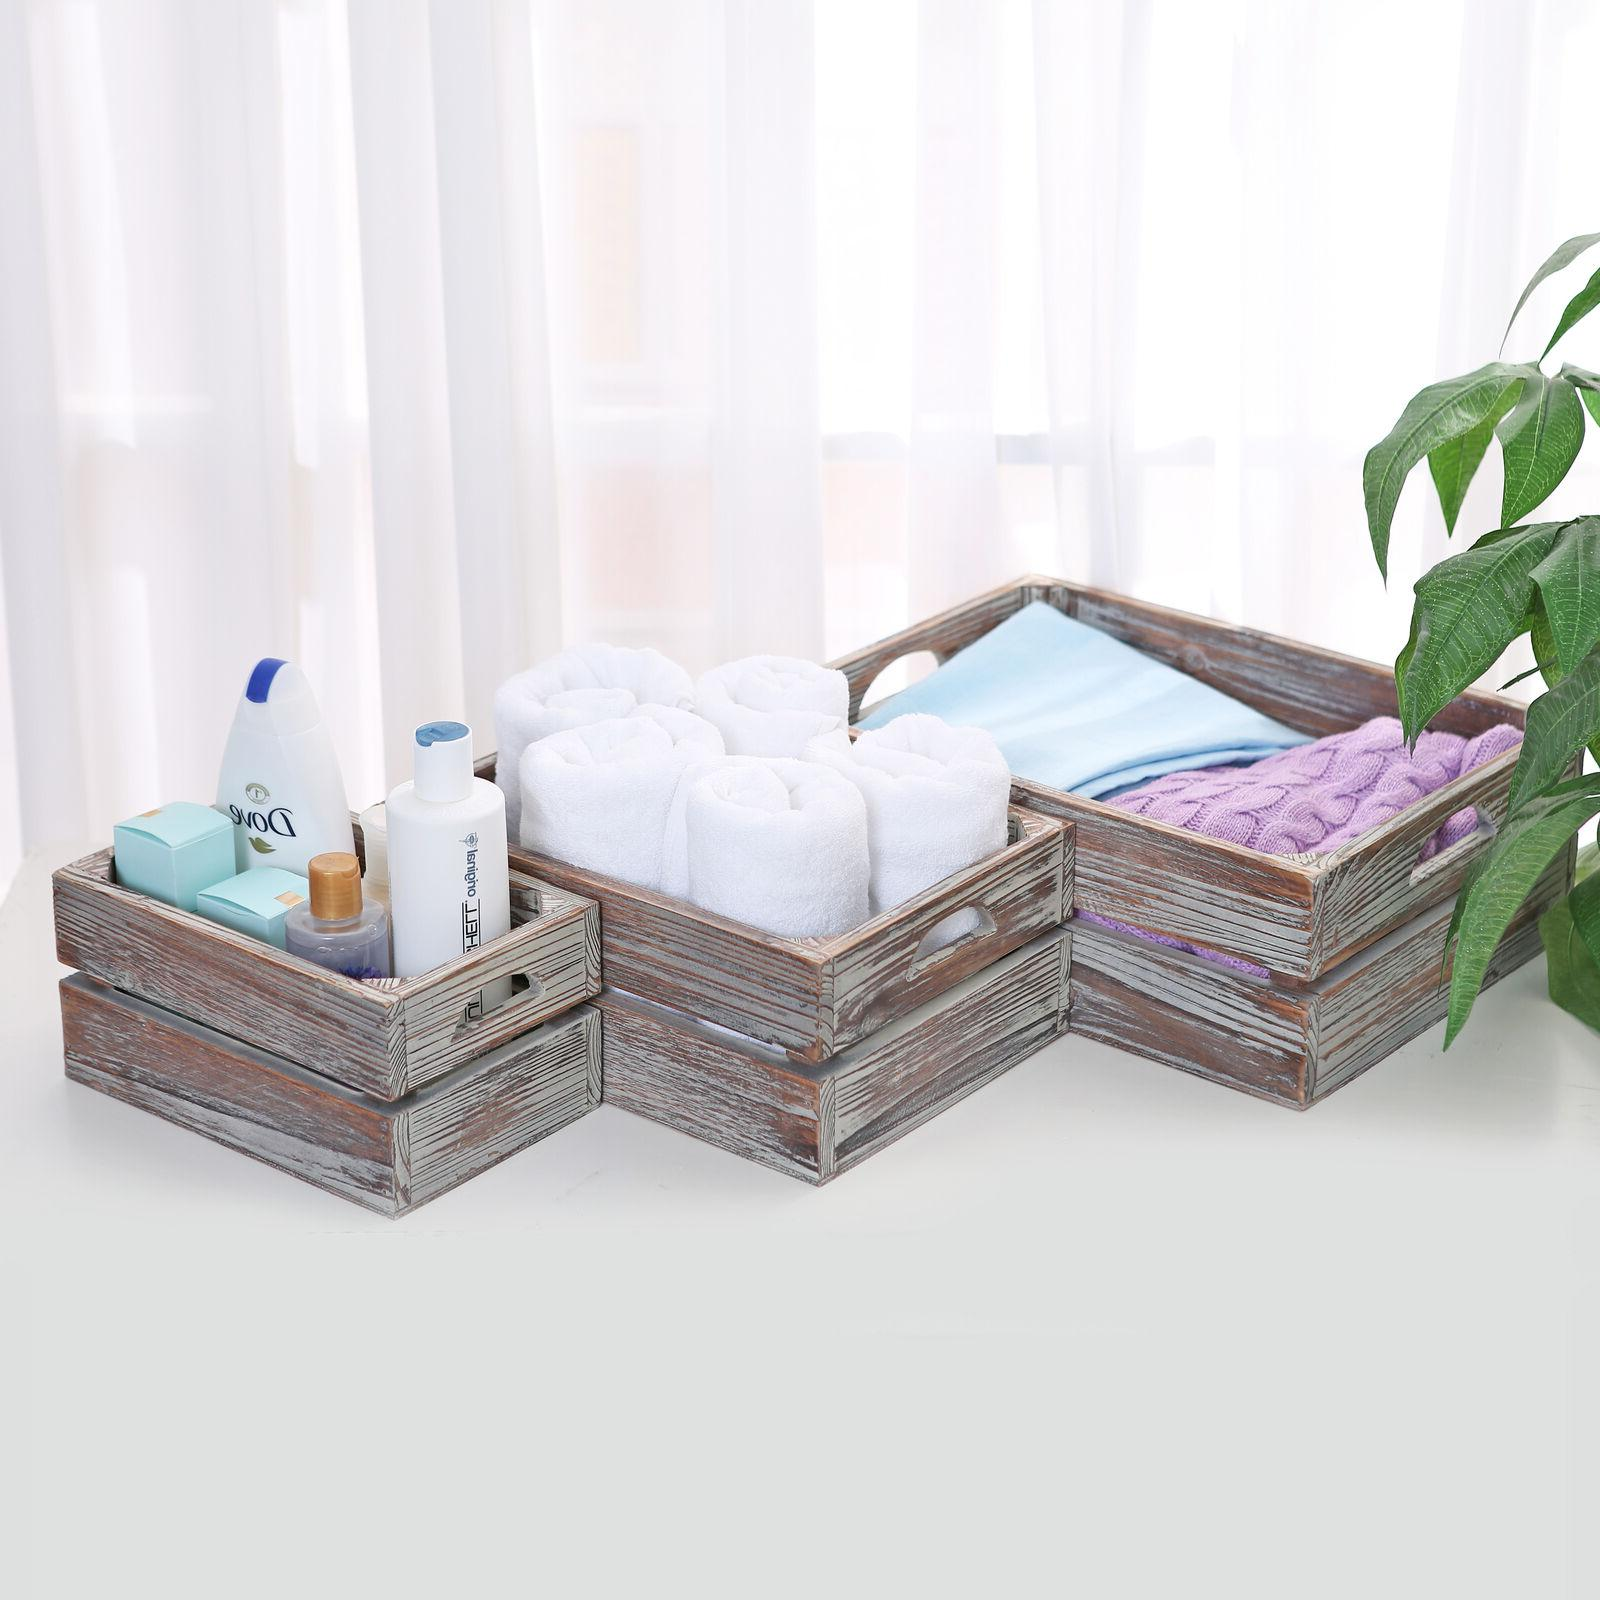 Set Finish Wood Boxes Storage Containers